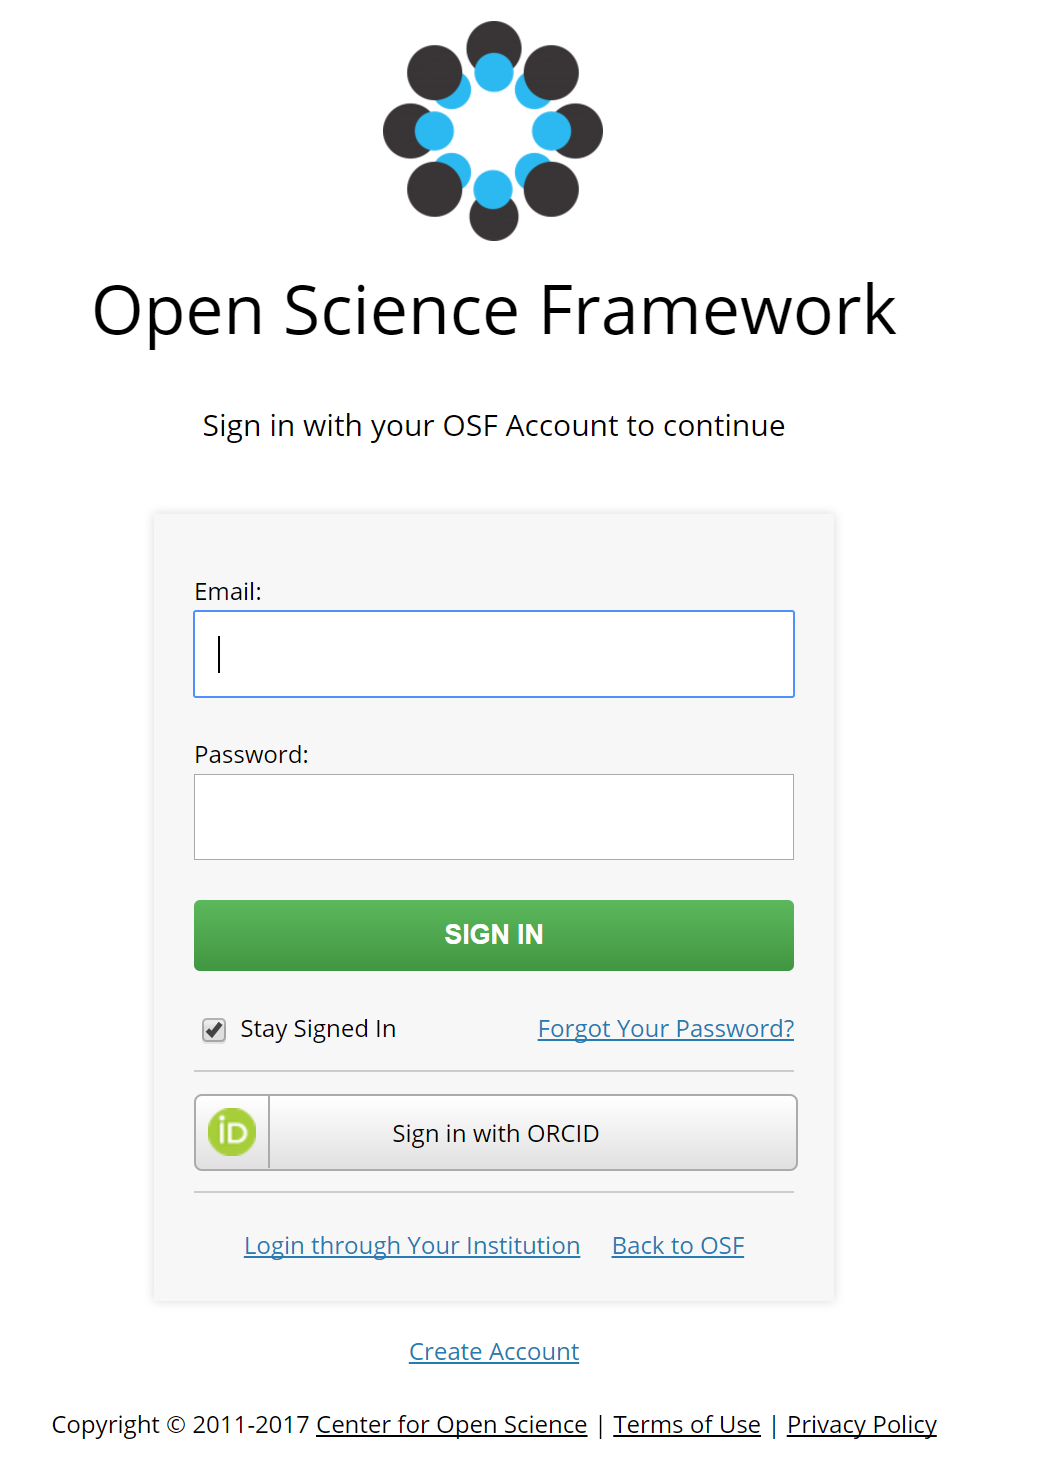 OSF sign in page with ORCID signing in option